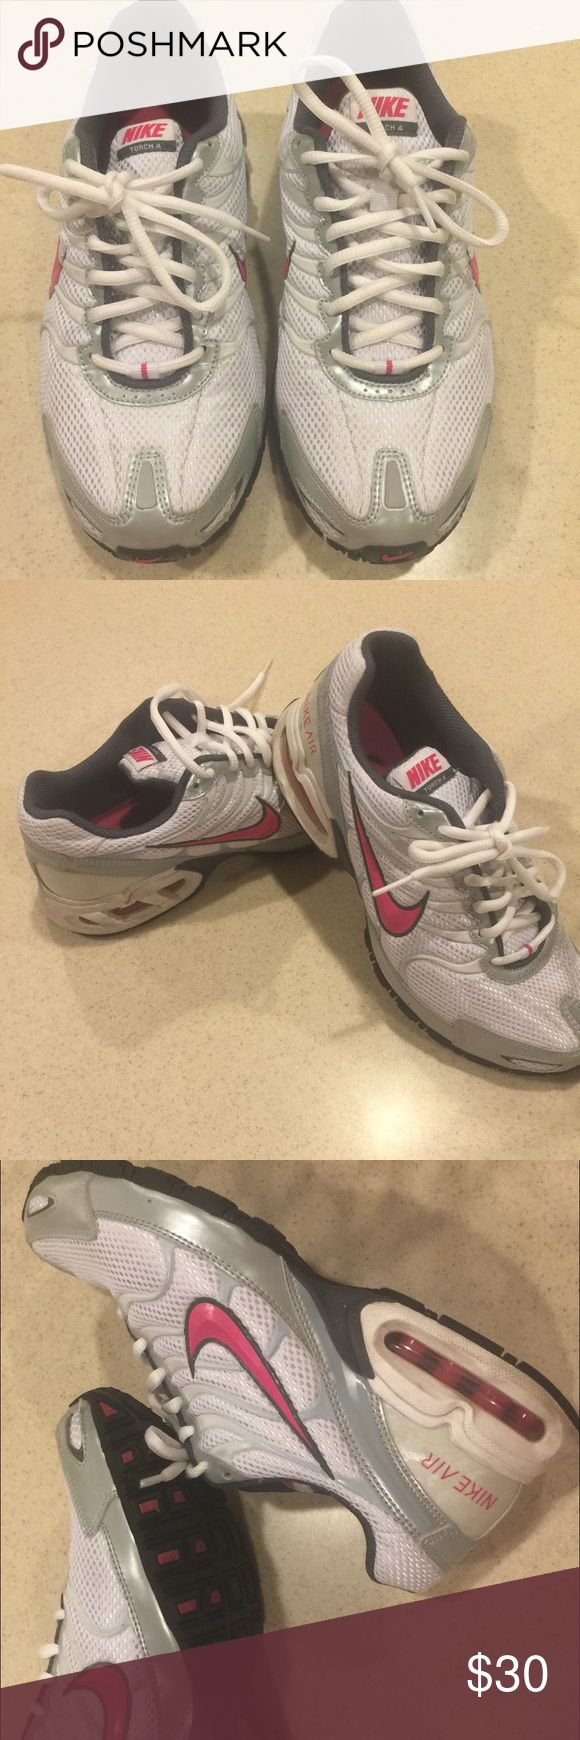 Nike Air Max Sneaker size 8.5 USA Nike Air Max Ladies sneaker, size 8.5 USA. Great condition! Nike Shoes Athletic Shoes